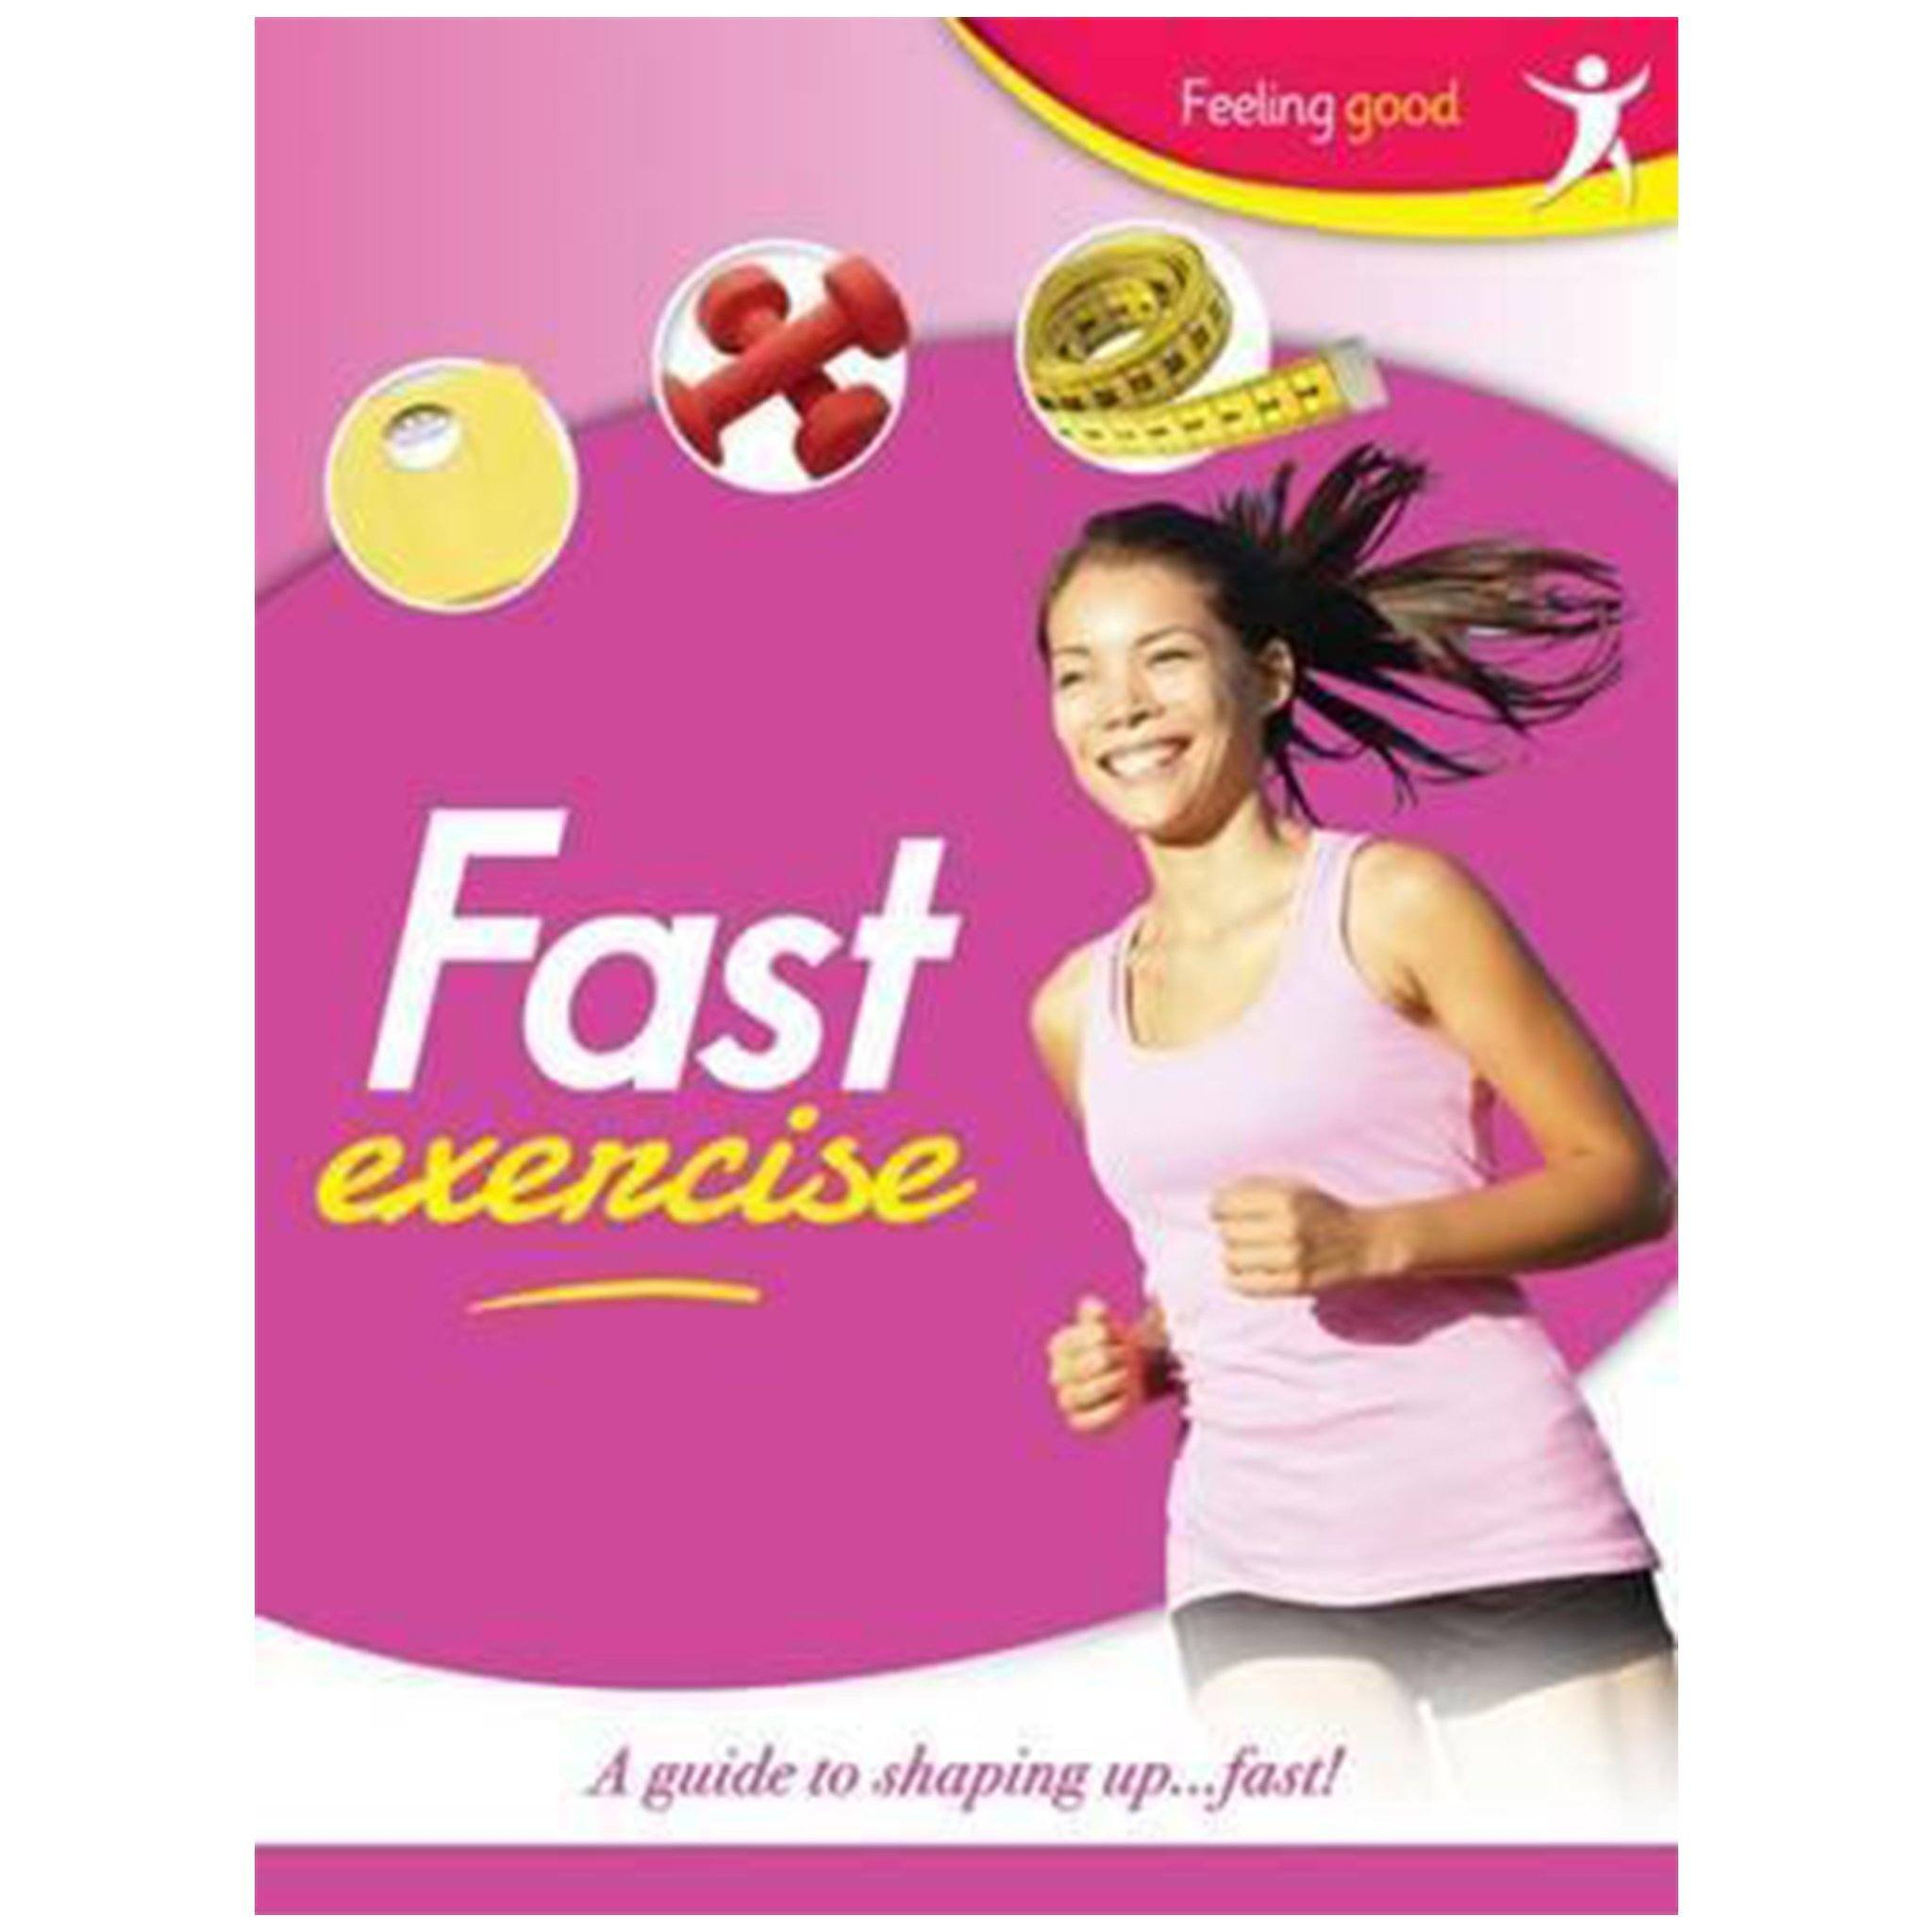 Fast Exercise Feeling Good Exercise Book Books Hinkler Books